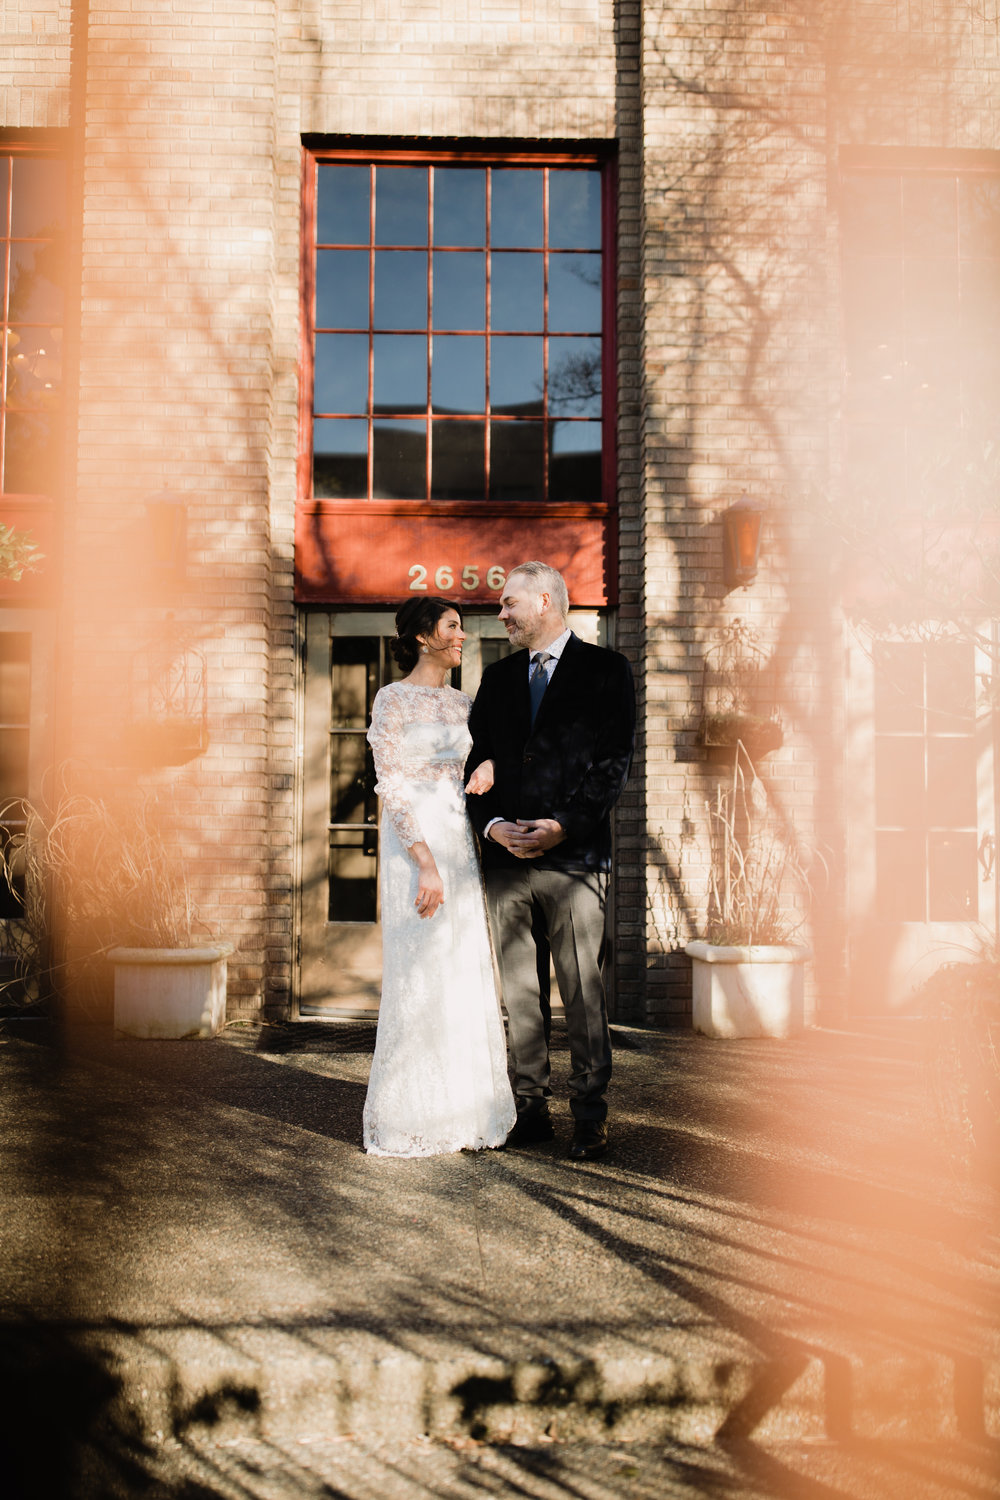 Pricing for Seattle Elopement Photographer